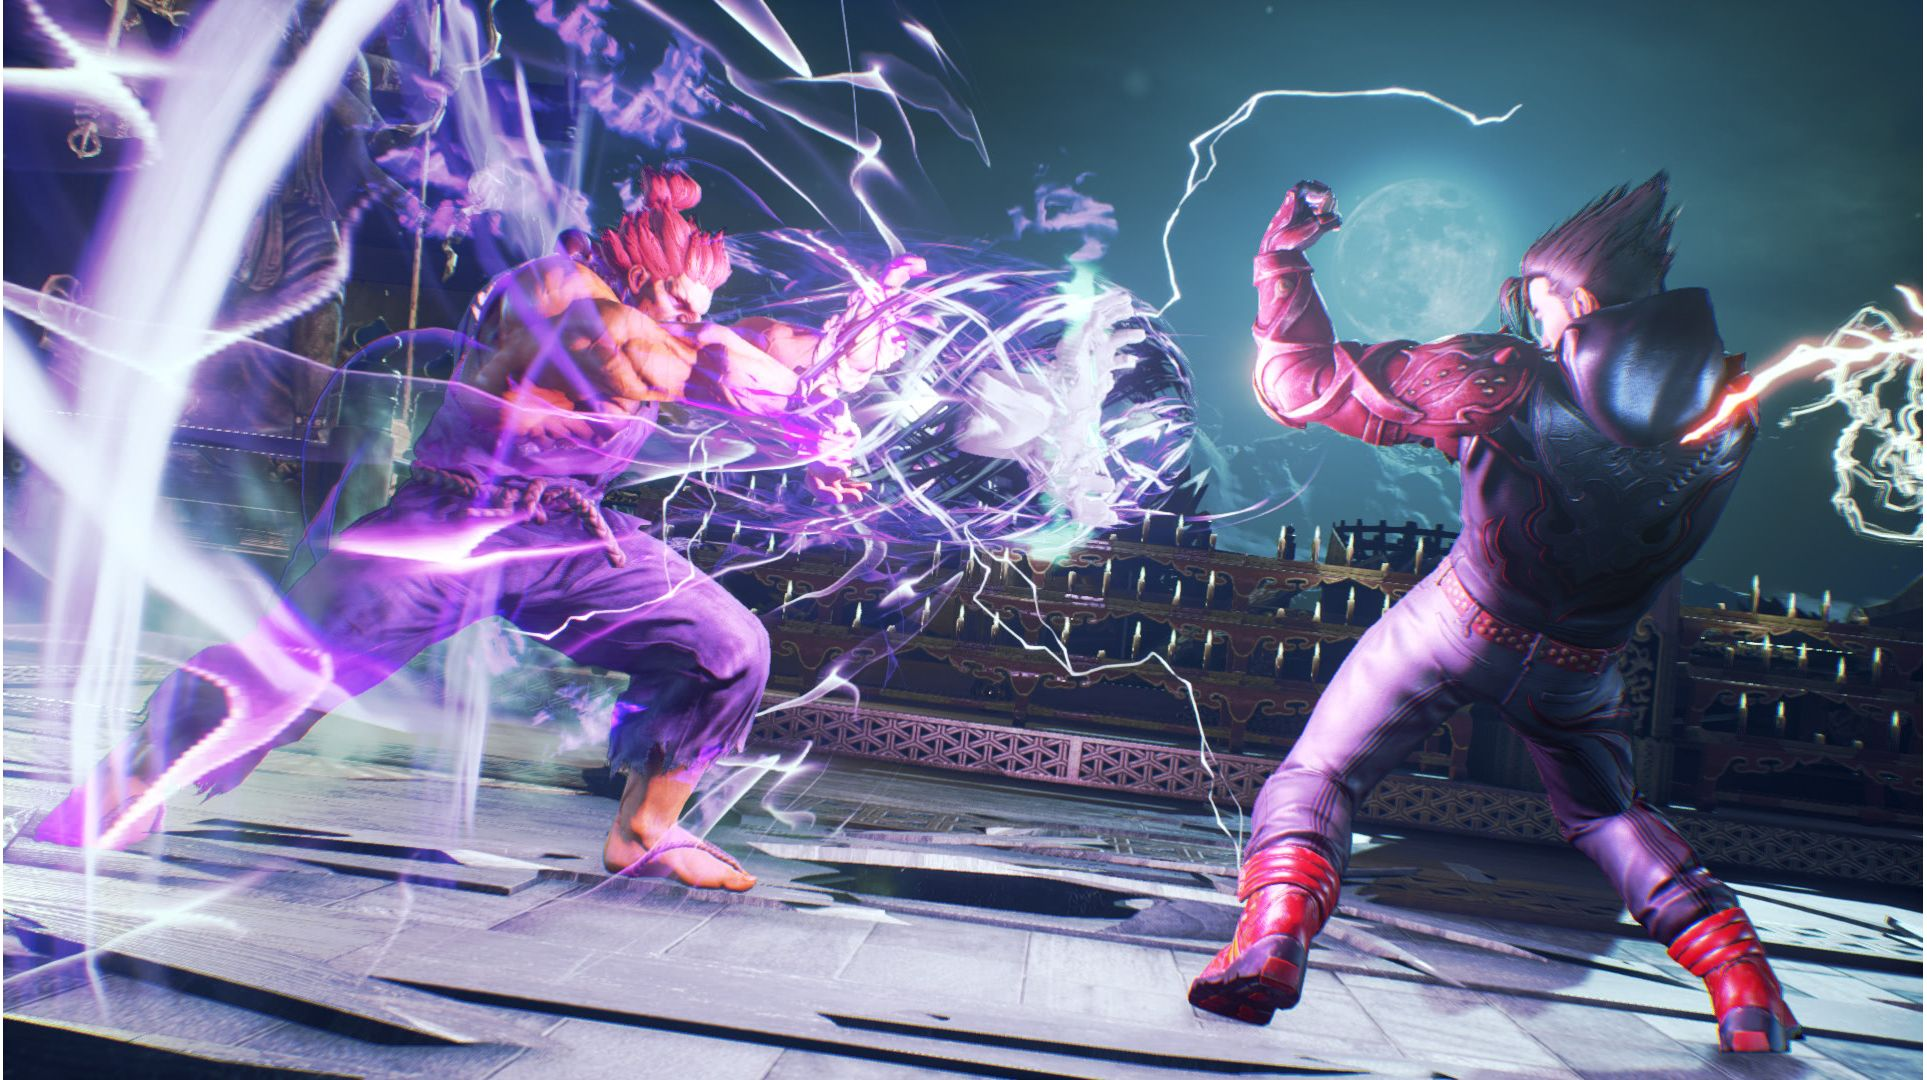 How To Play Tekken 7 On Pc